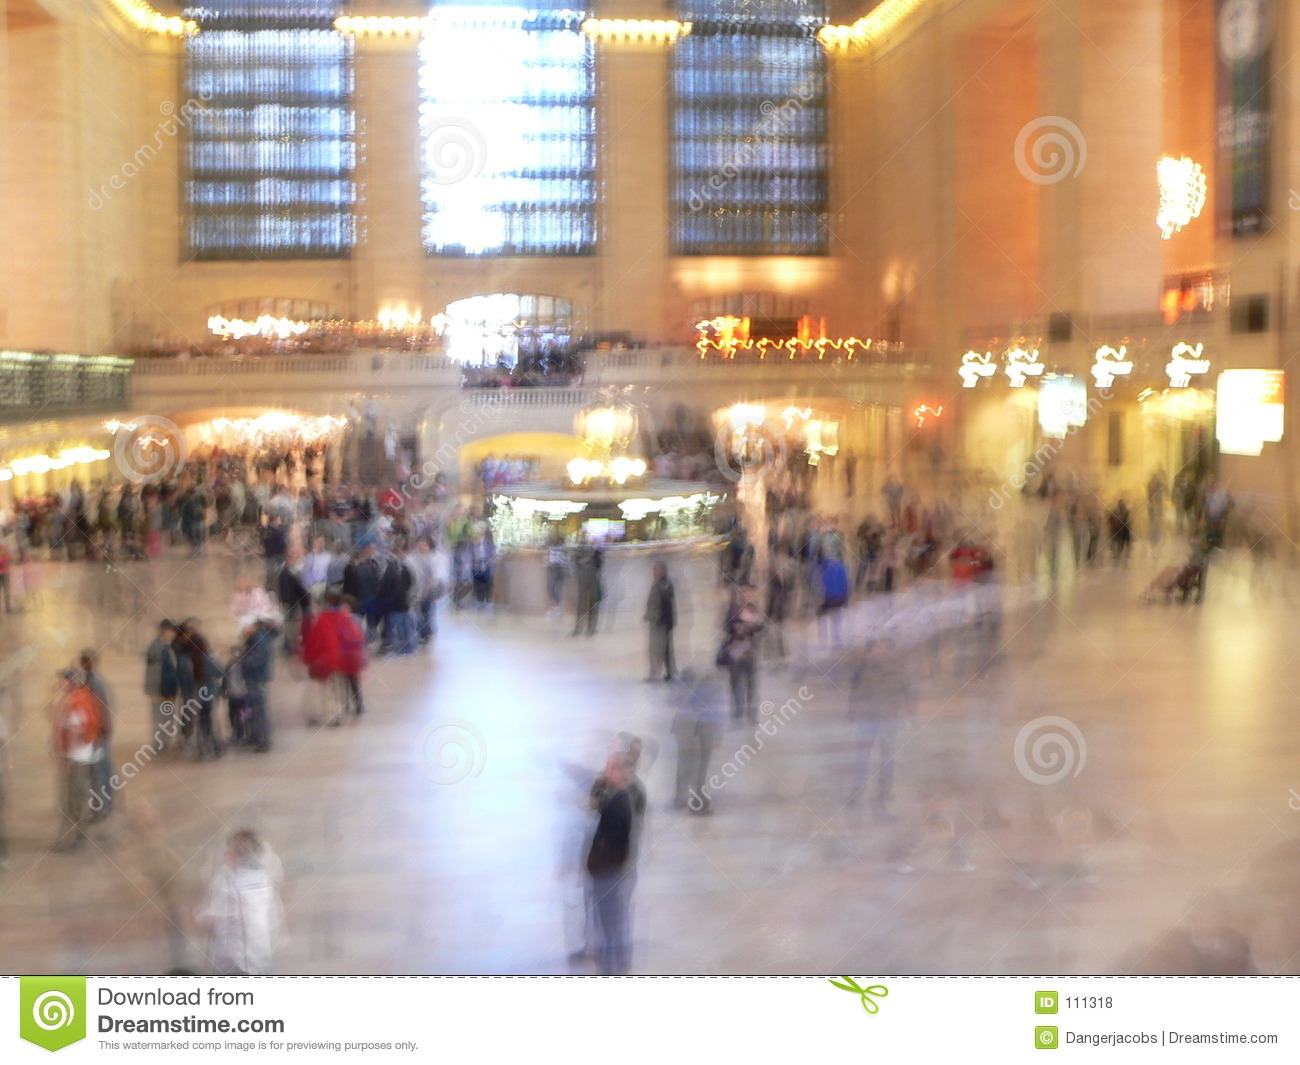 Fast paced Grand Central Terminal, New York City